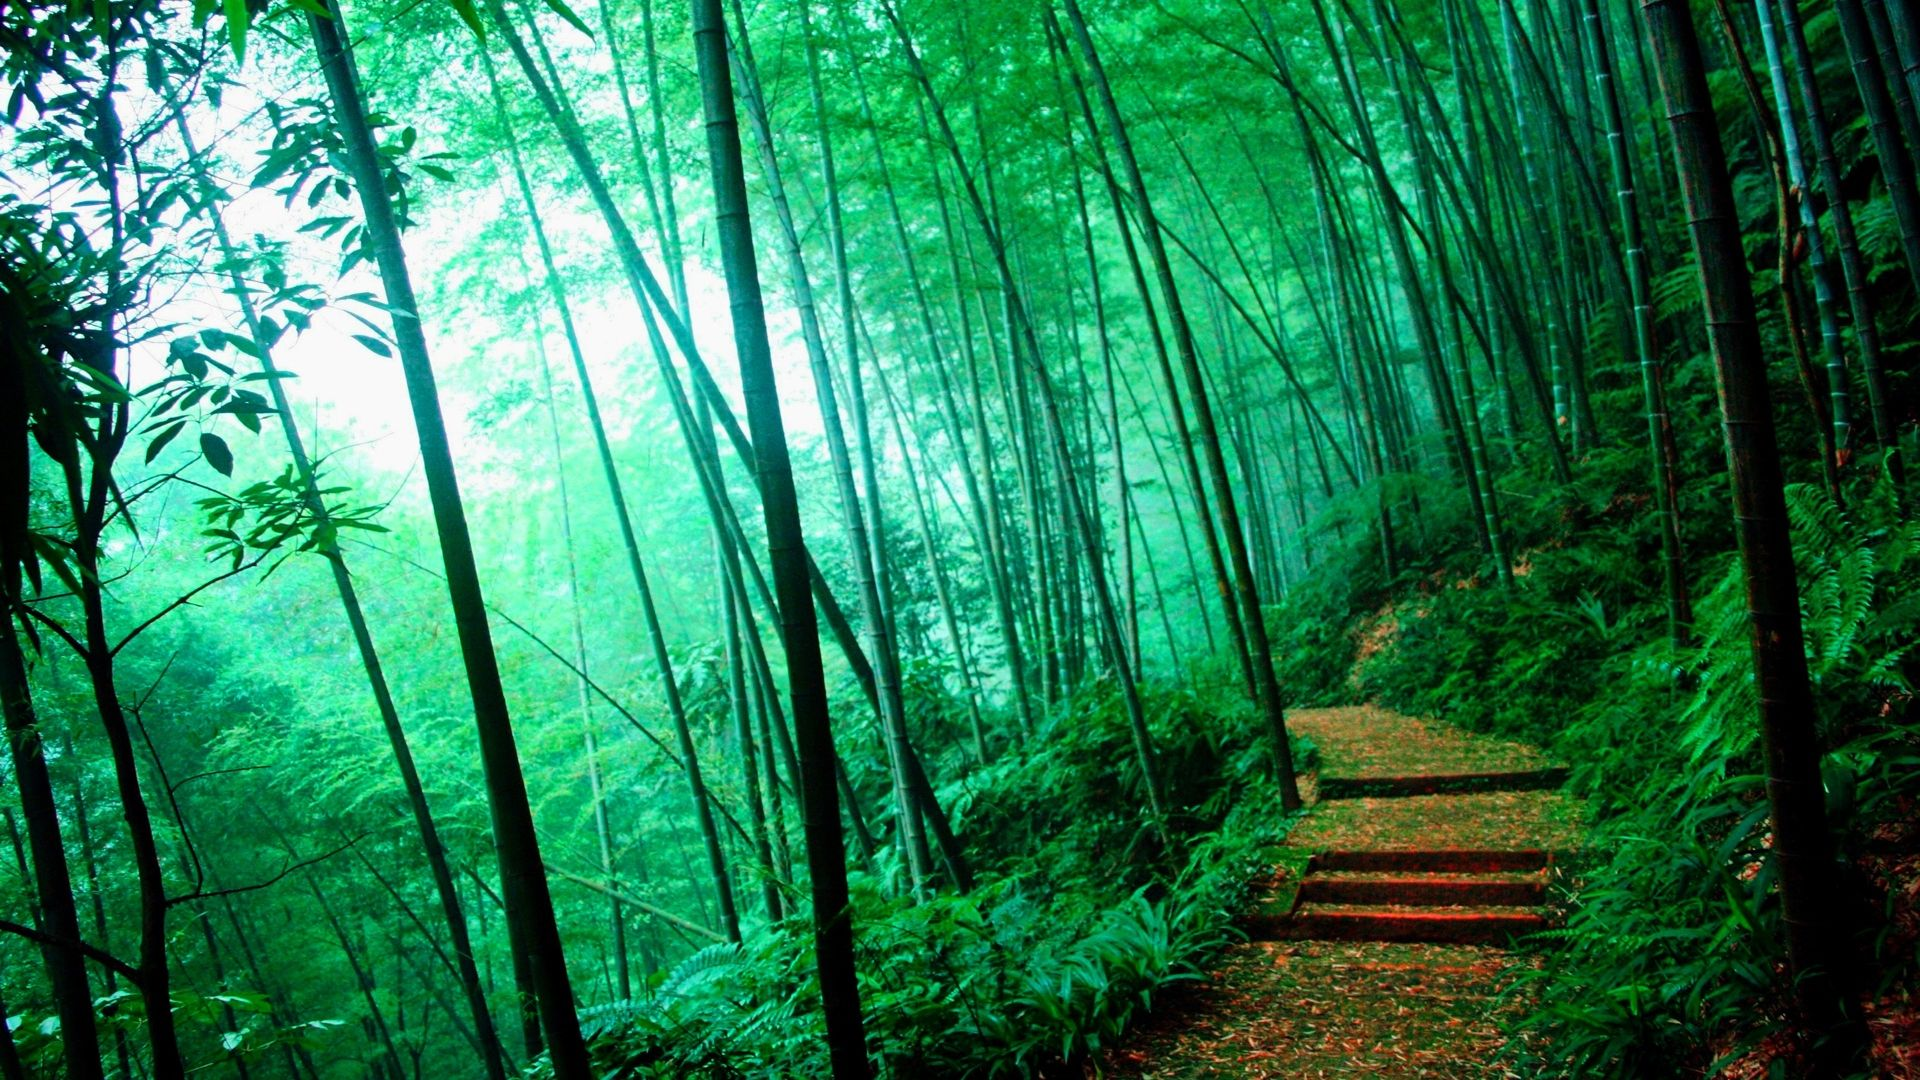 Hd wallpaper nature green - Bamboo Forest Google Search